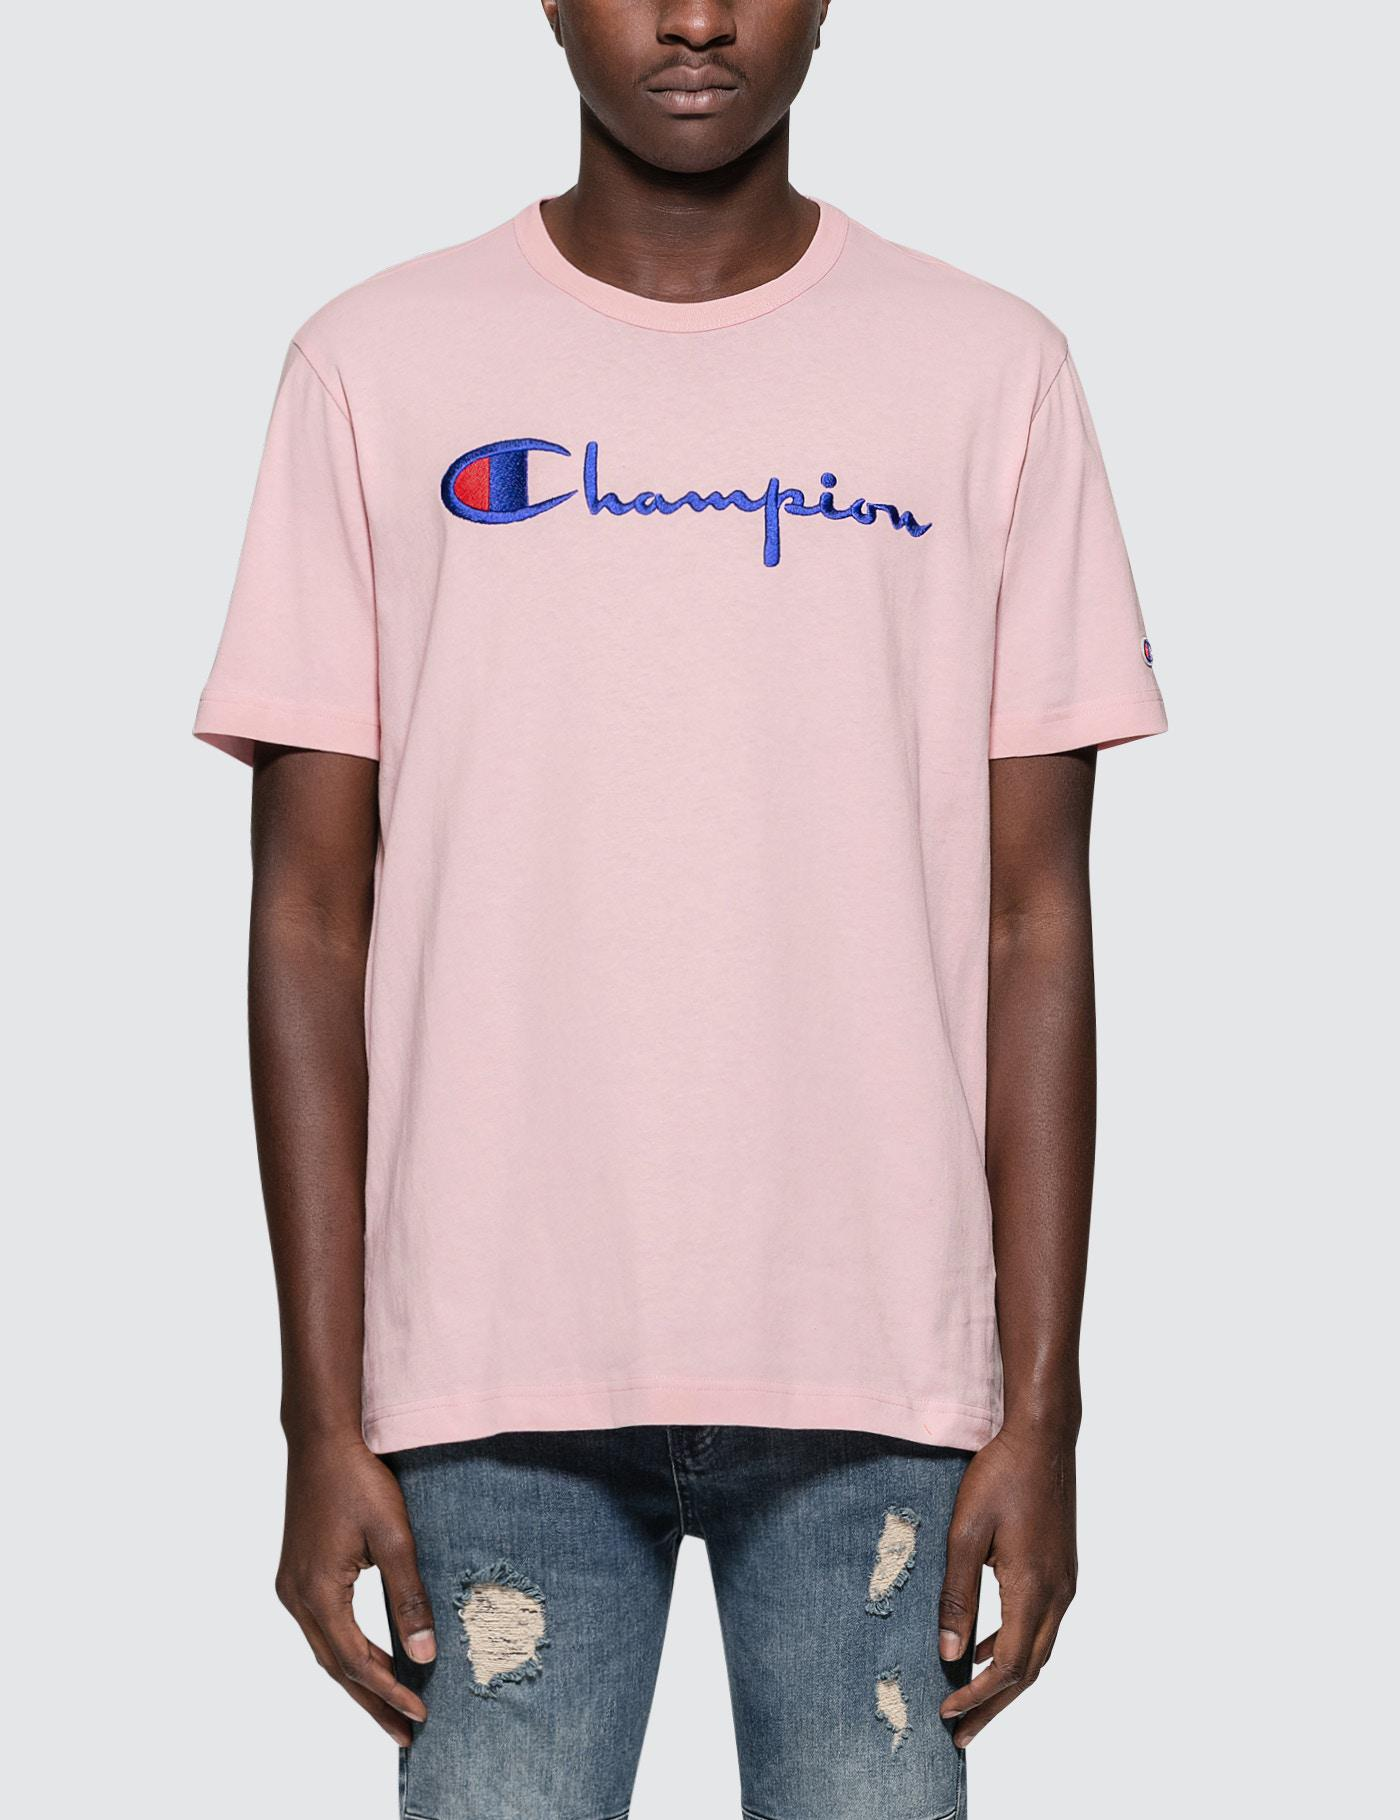 4c5f1a4f9b5e Champion Script Logo S/s T-shirt in Pink for Men - Lyst